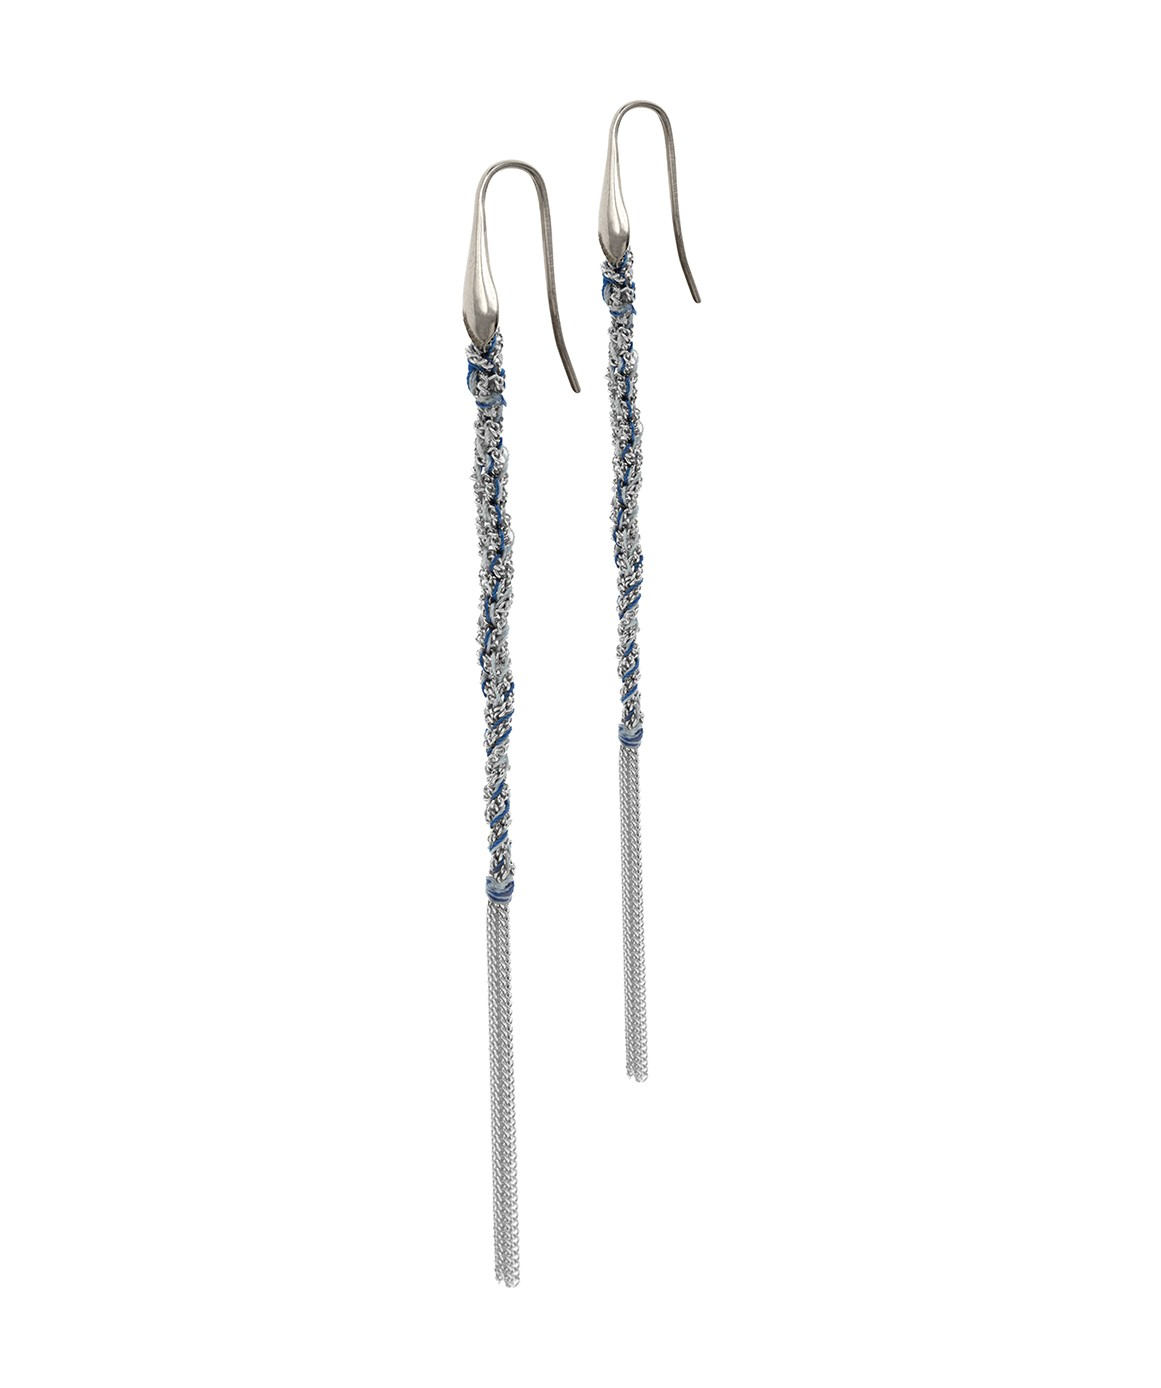 TWIST Earrings in Sterling Silver Rhodium plated. Fabric: Jeans